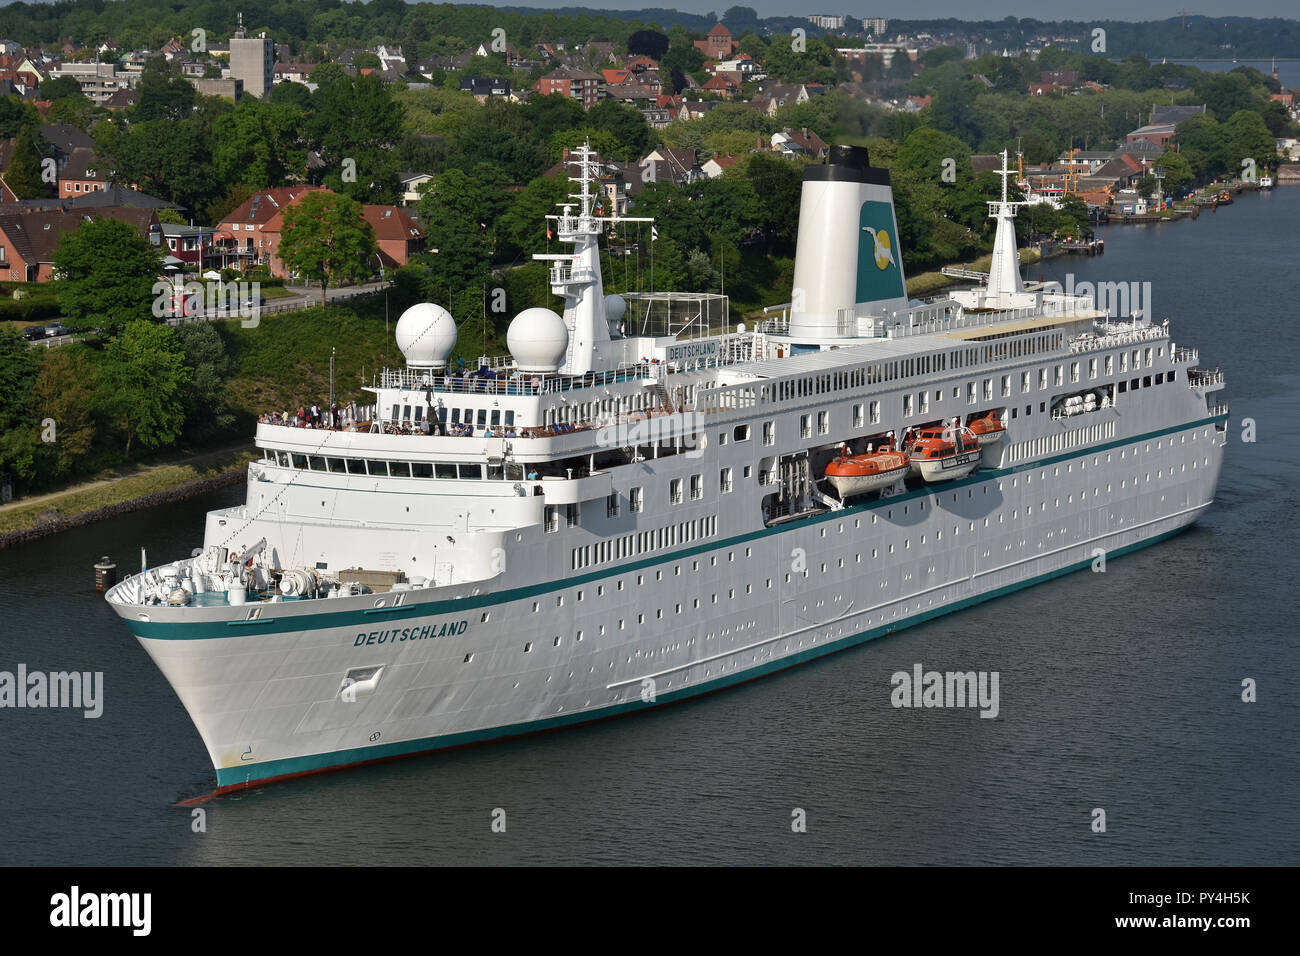 Cruiseship Deutschland passing the Kiel canal - Stock Image